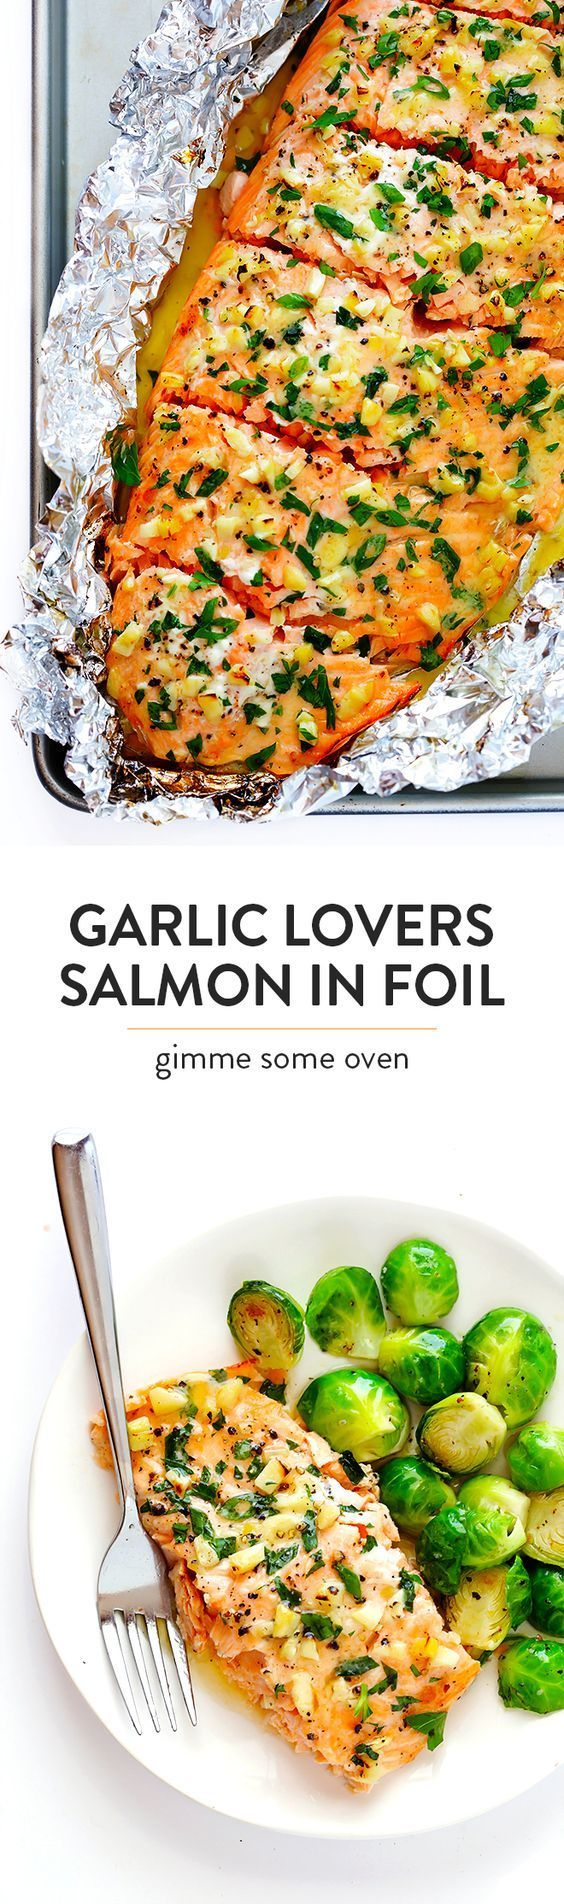 25 best ideas about lemon garlic butter sauce on for How to bake swai fish in foil